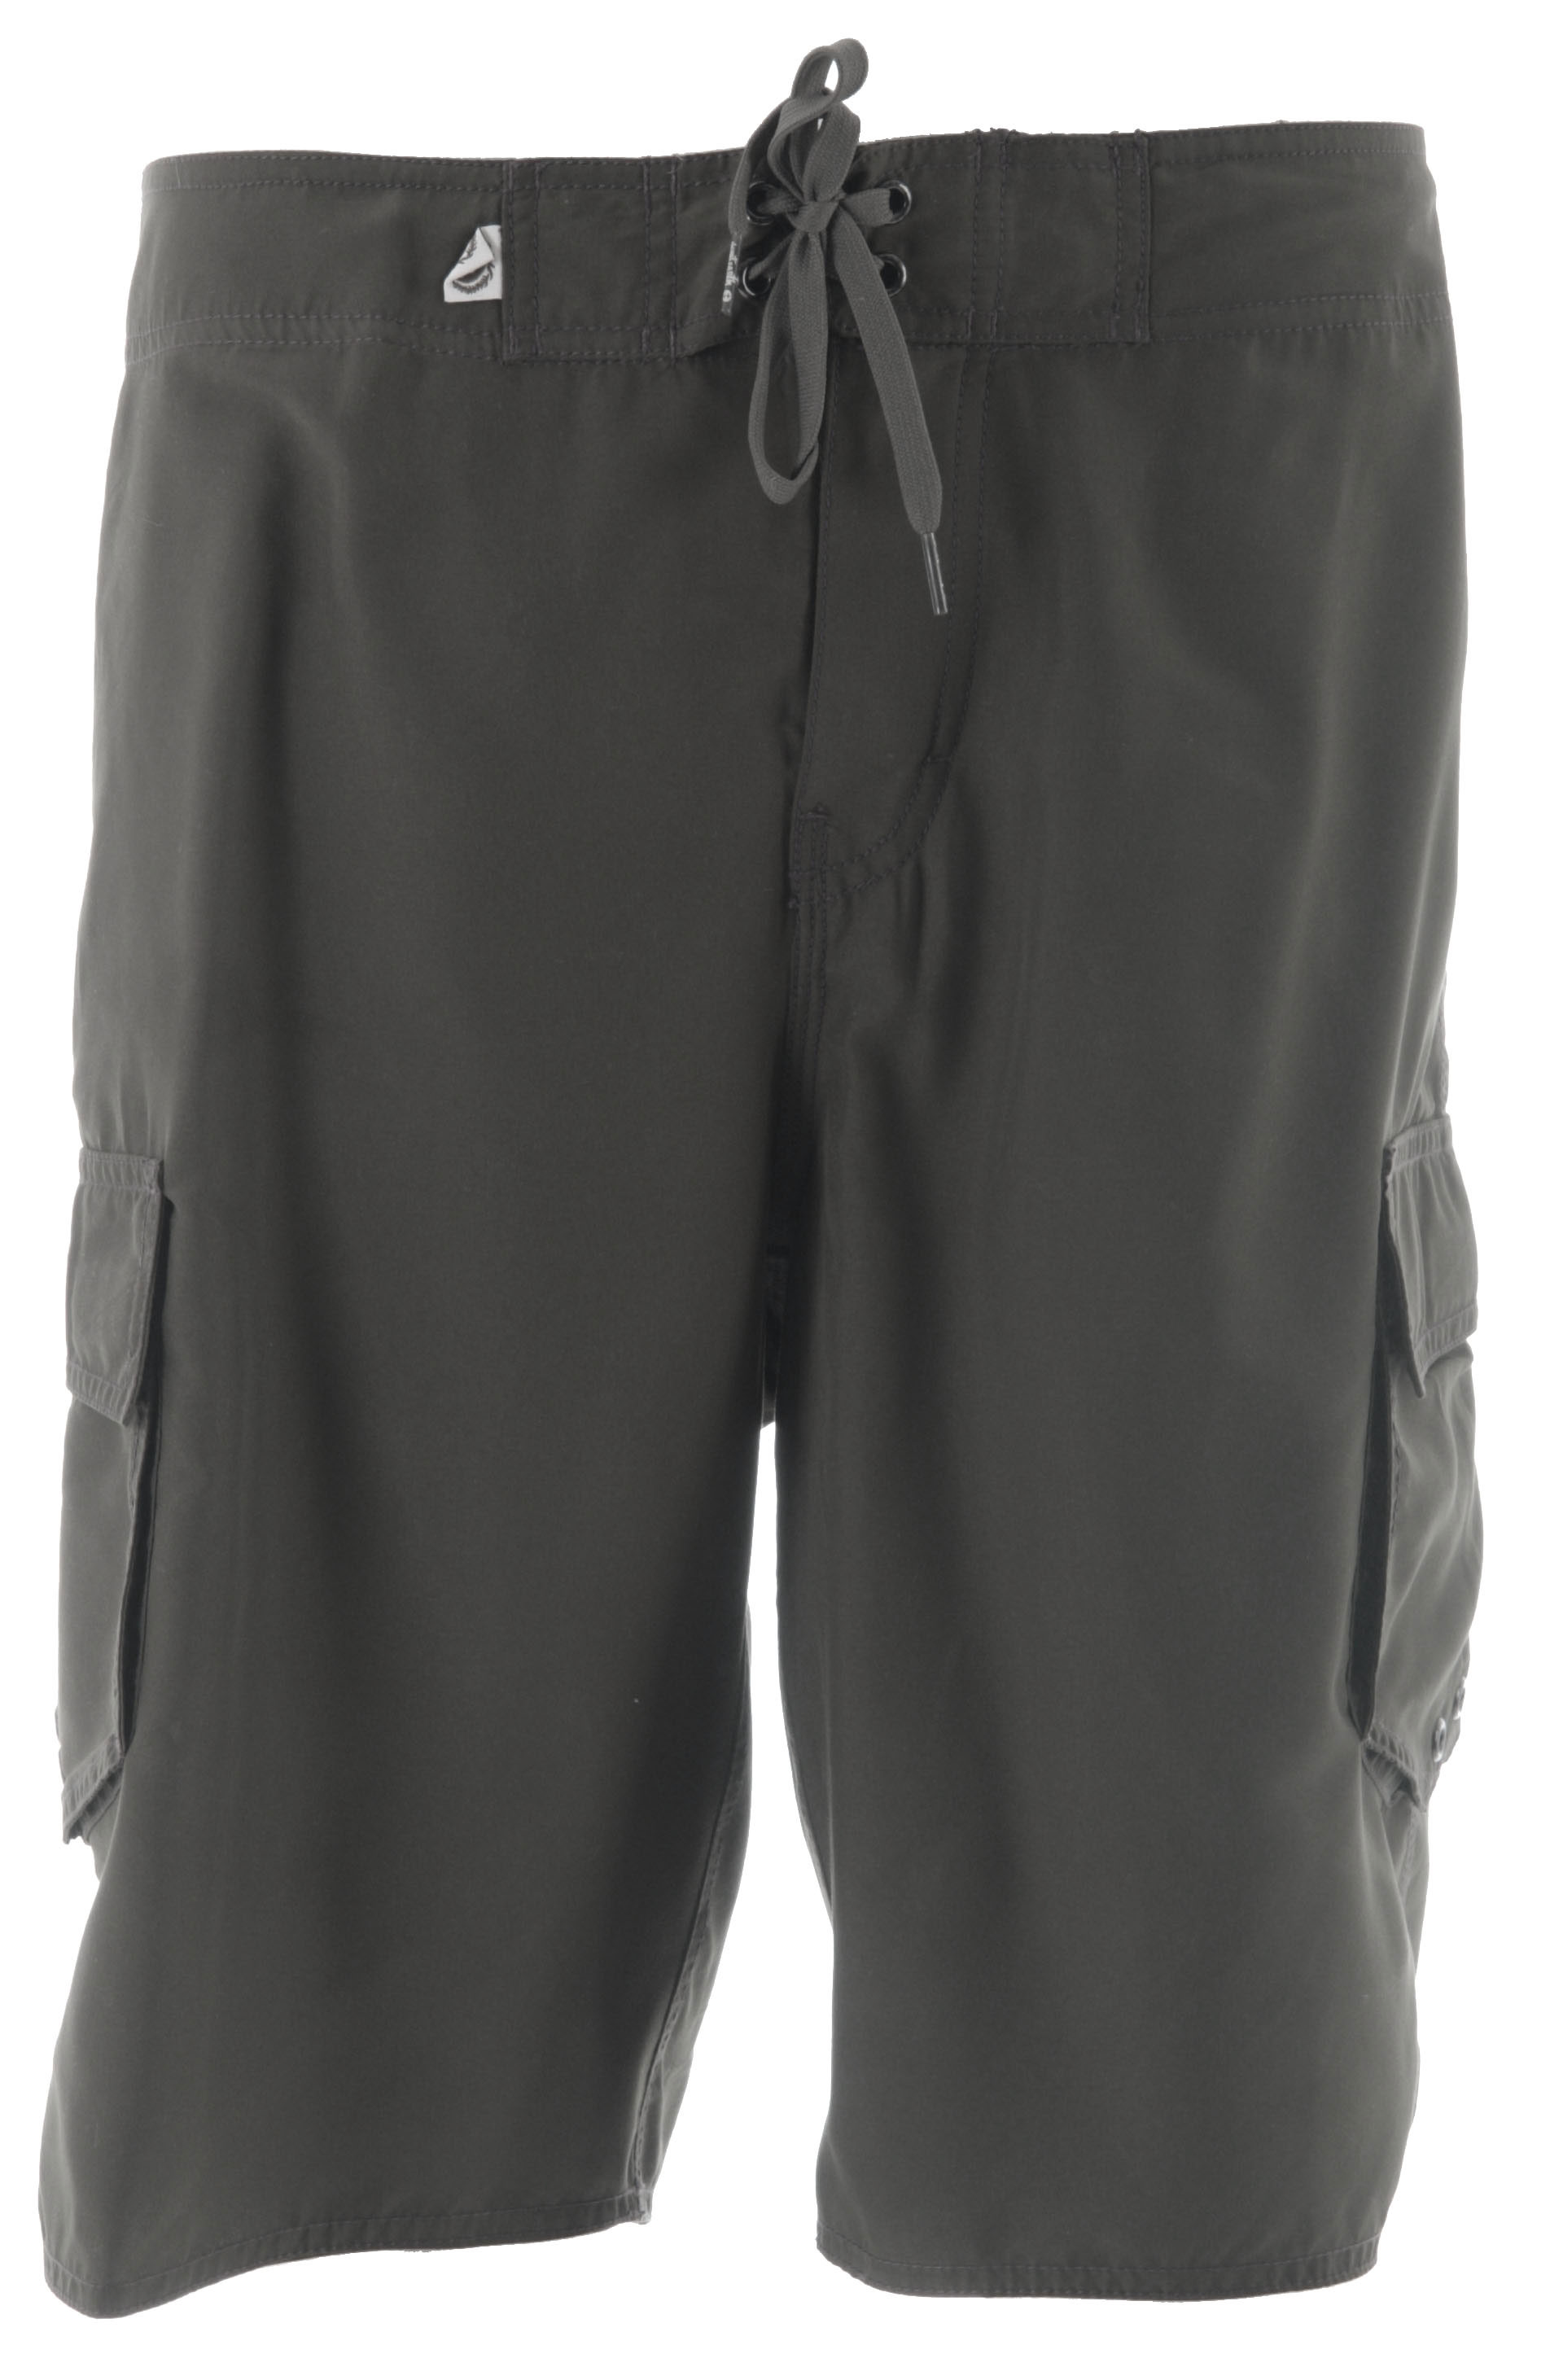 Surf Key Features of the Planet Earth Marshall Boardshorts: 100% Recycled Polyester PET Dual Cargo Pockets - $17.46